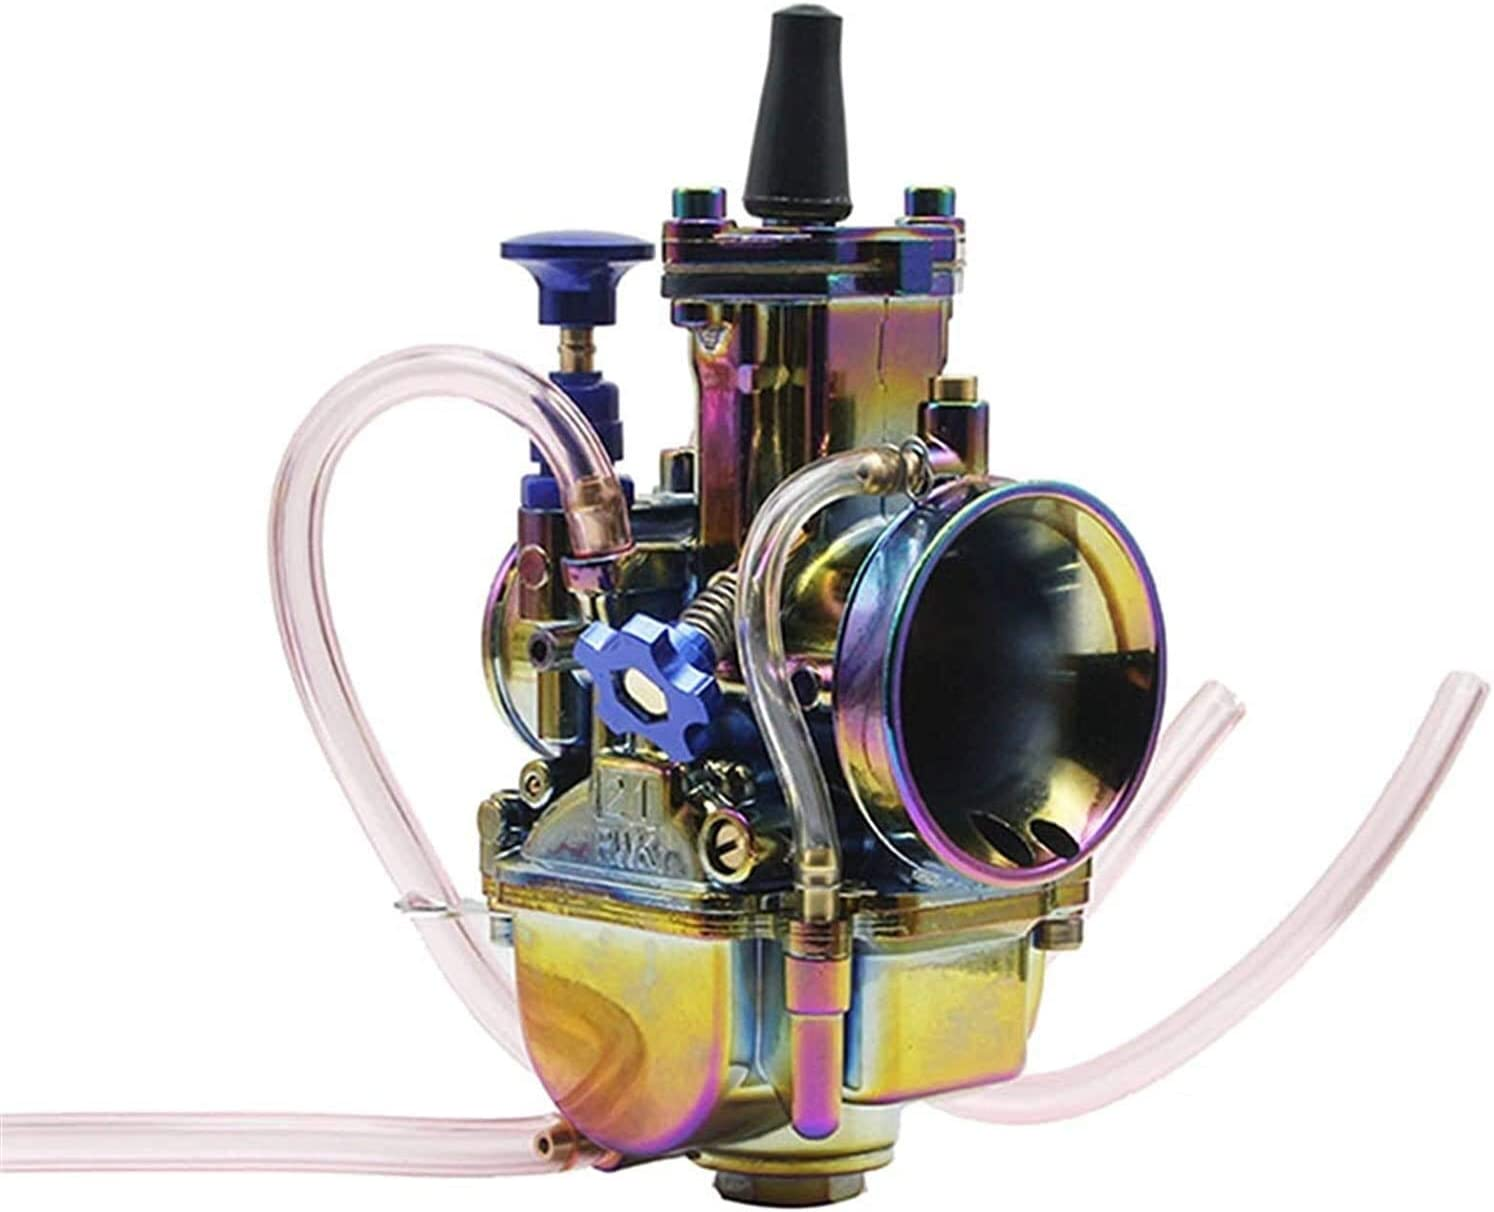 Carburetor Max 56% OFF Universal Multicolor Motorcycle Cheap mail order specialty store 21 26 24 2